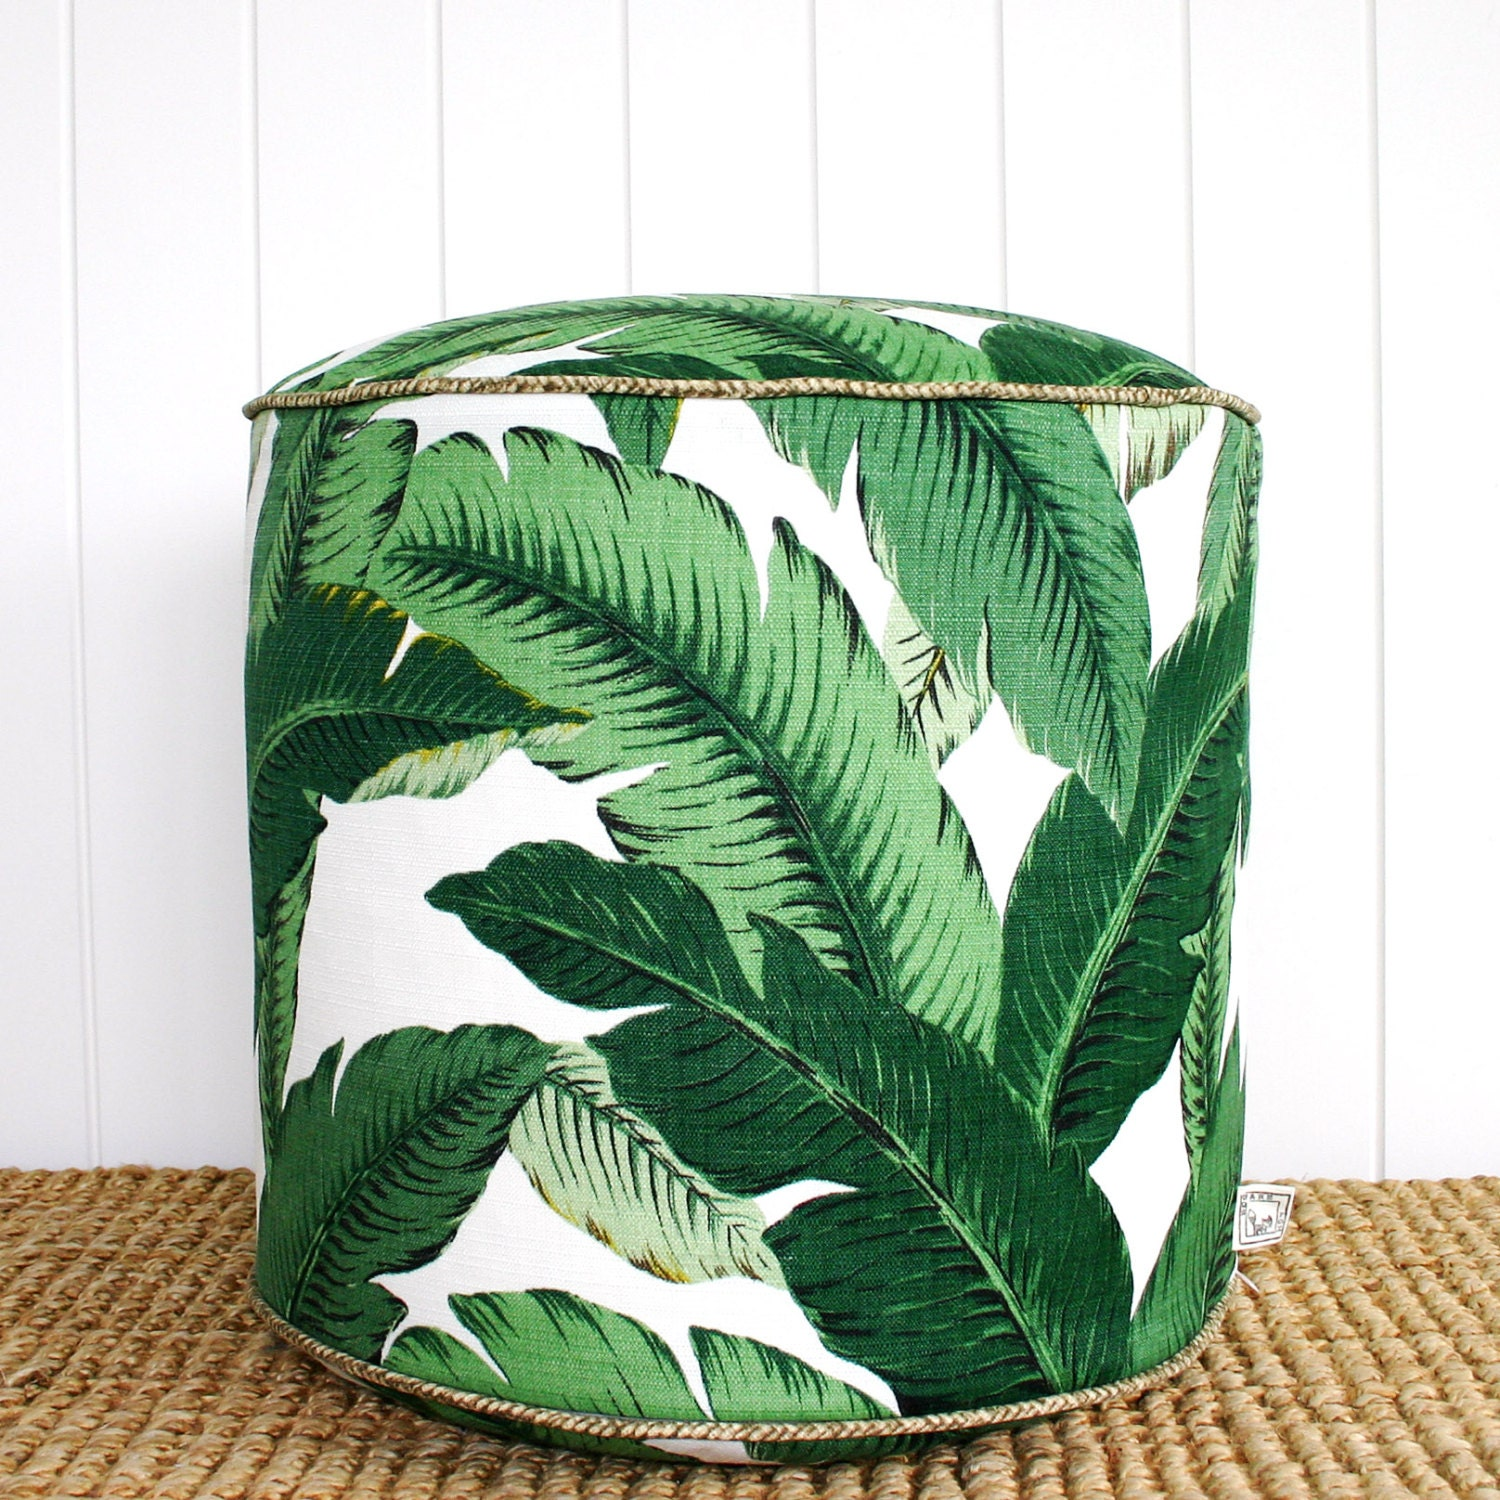 square fox green palm outdoor pouf ottoman floor seat round. Black Bedroom Furniture Sets. Home Design Ideas